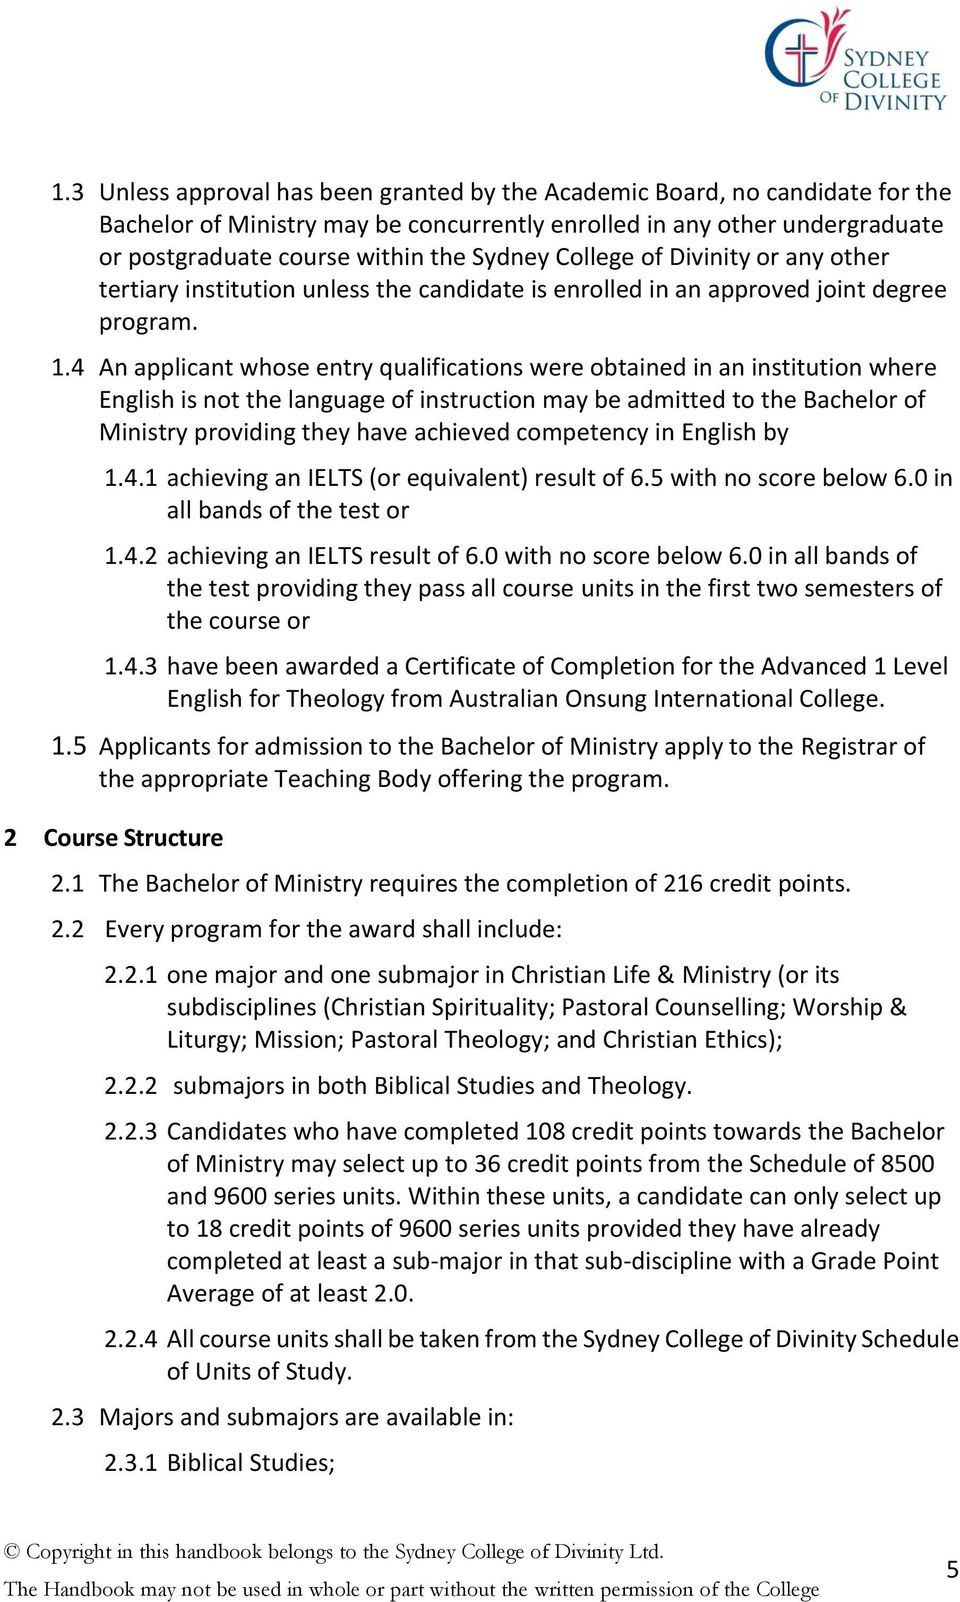 4 An applicant whose entry qualifications were obtained in an institution where English is not the language of instruction may be admitted to the Bachelor of Ministry providing they have achieved